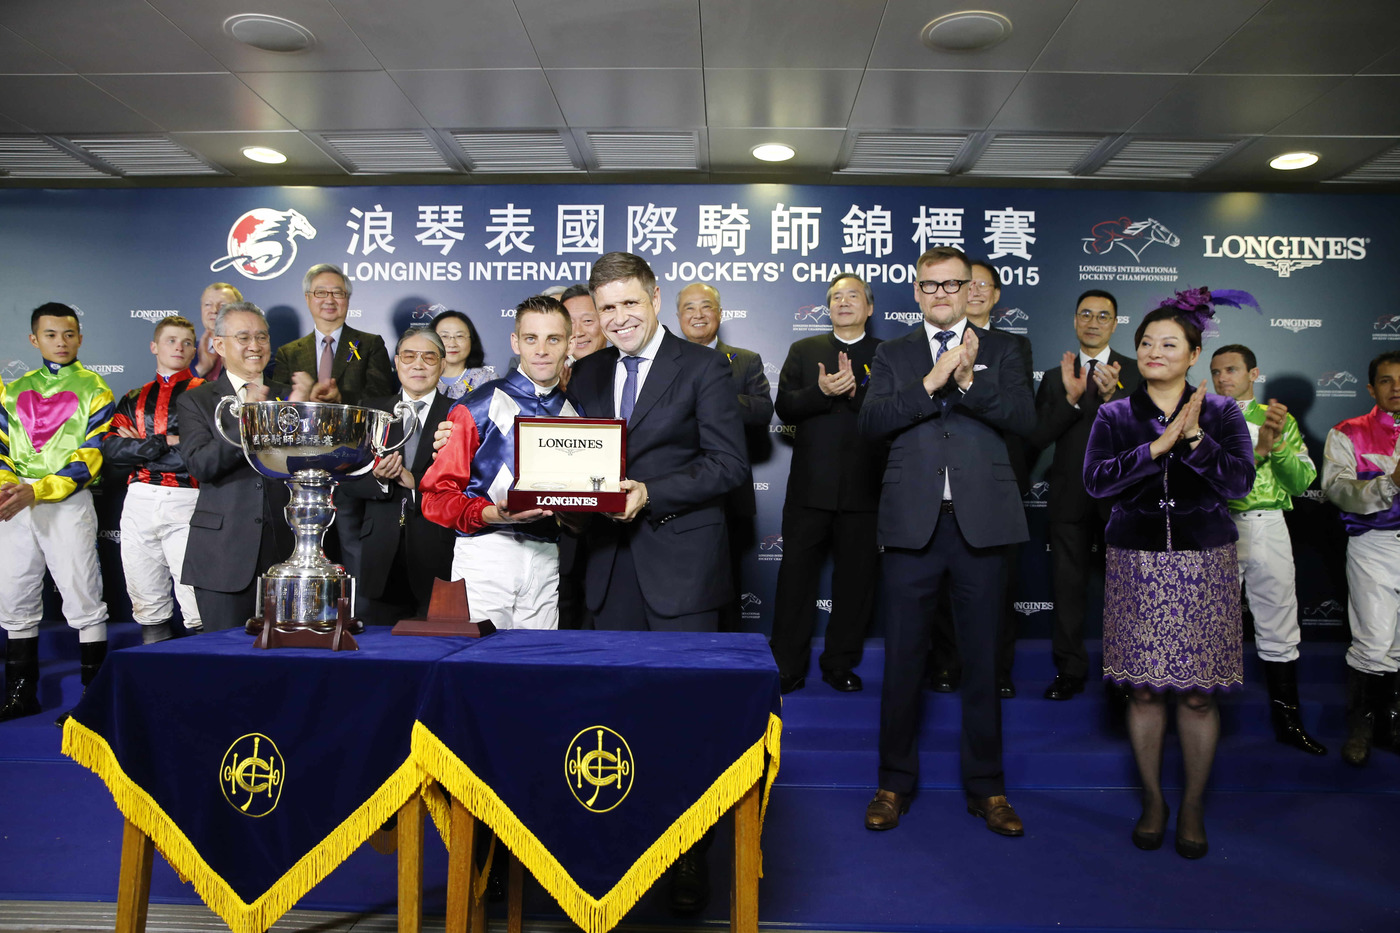 Longines Flat Racing Event: The Longines International Jockeys' Championship 2015: The battle of the world's best jockeys 1